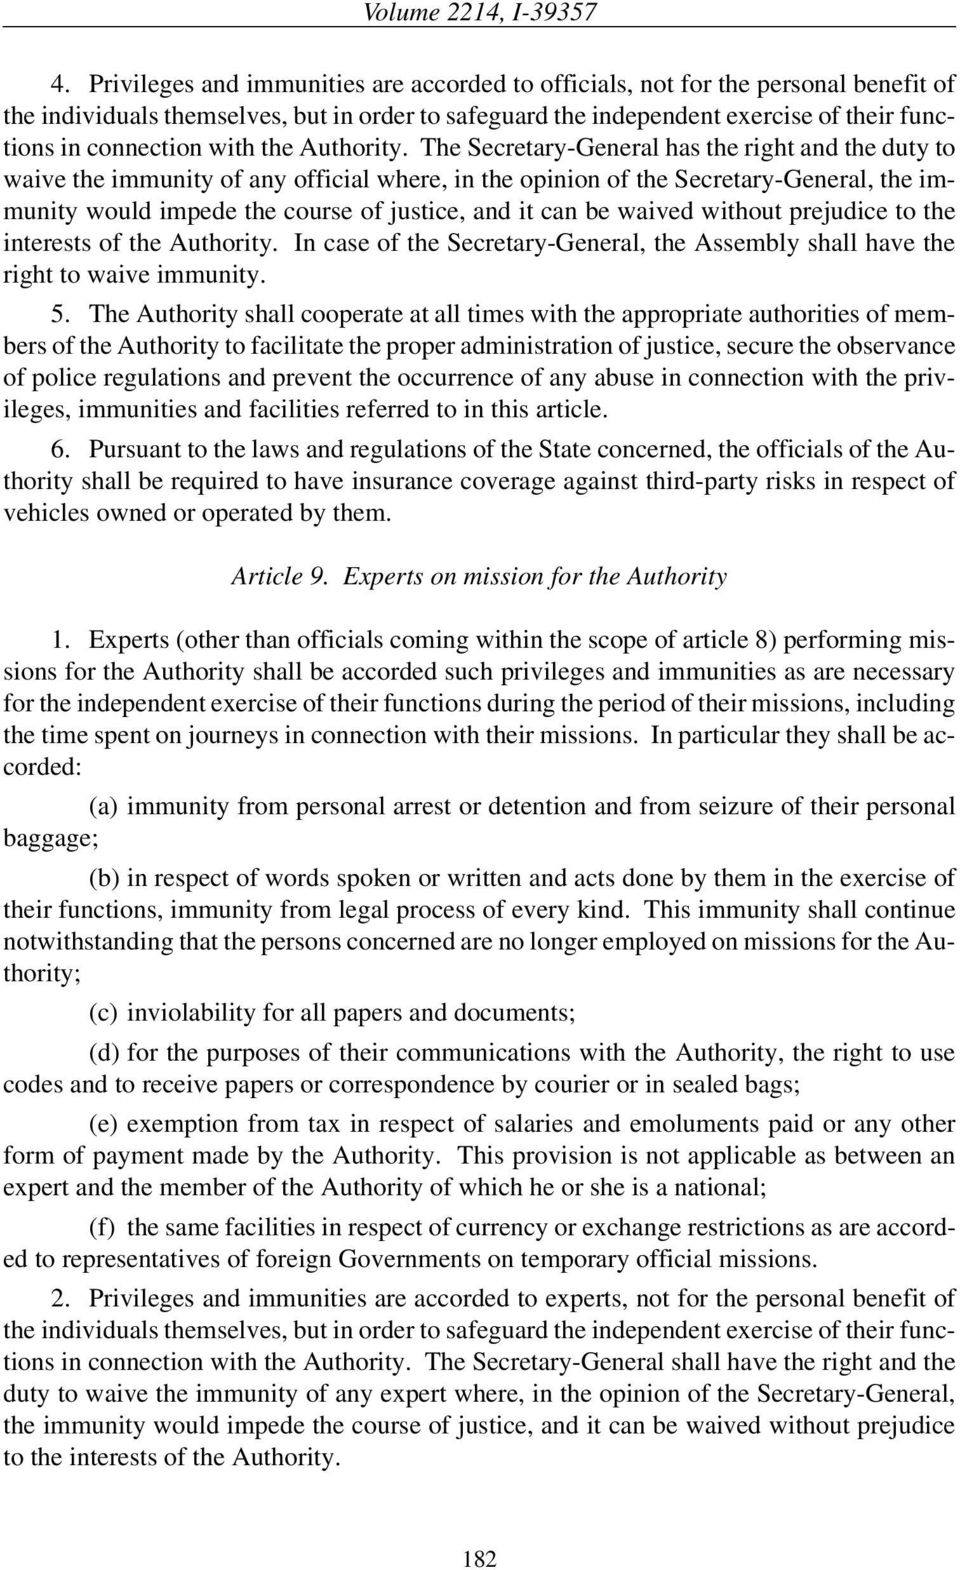 The Secretary-General has the right and the duty to waive the immunity of any official where, in the opinion of the Secretary-General, the immunity would impede the course of justice, and it can be